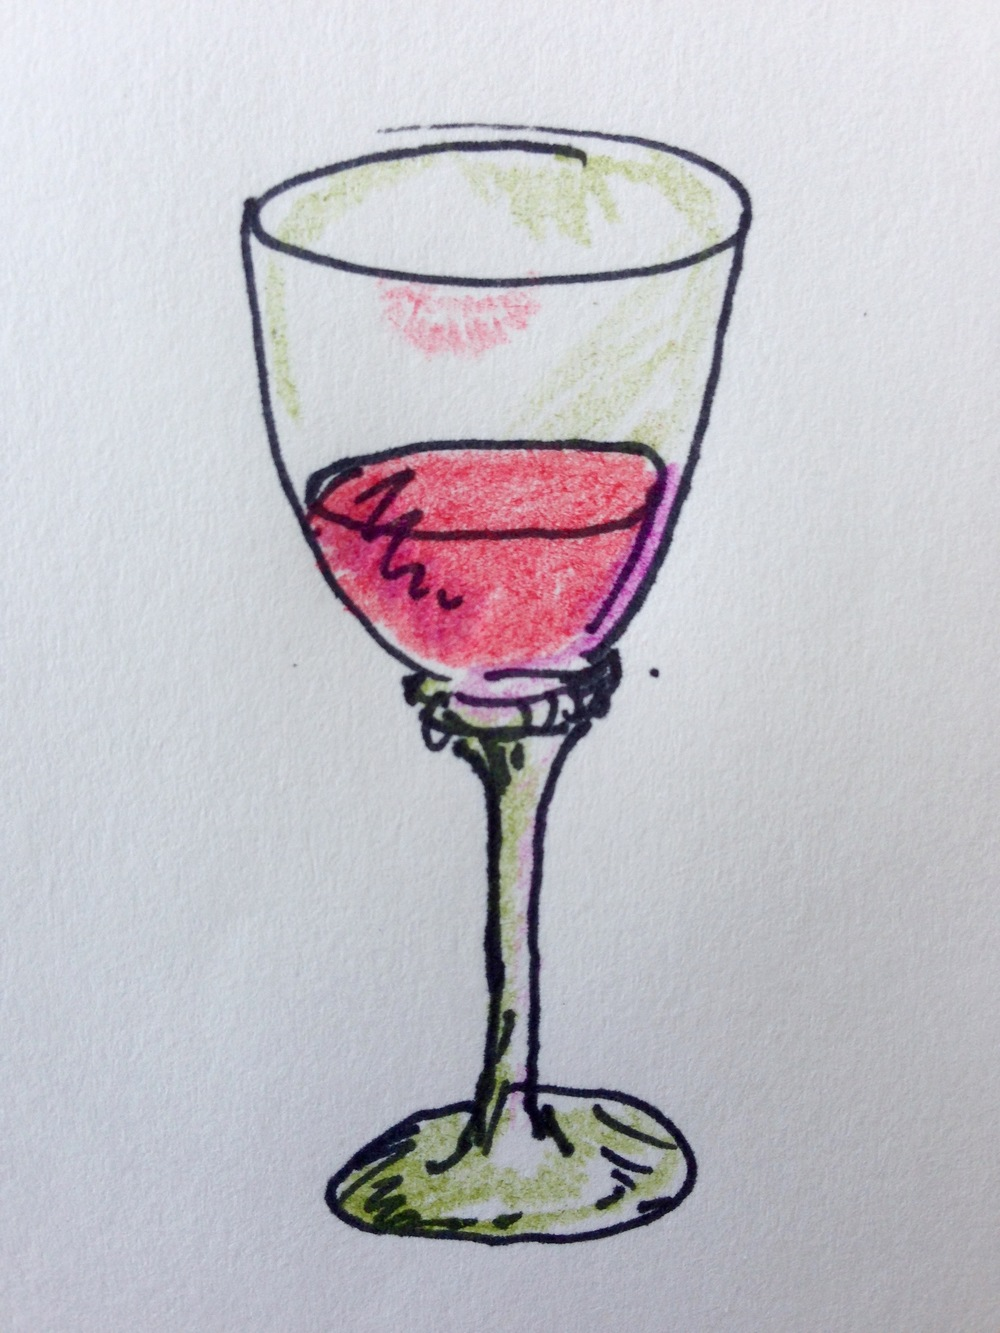 Bottoms up! Here's lookin' at you, kid!   Illustration by Heather Phillips